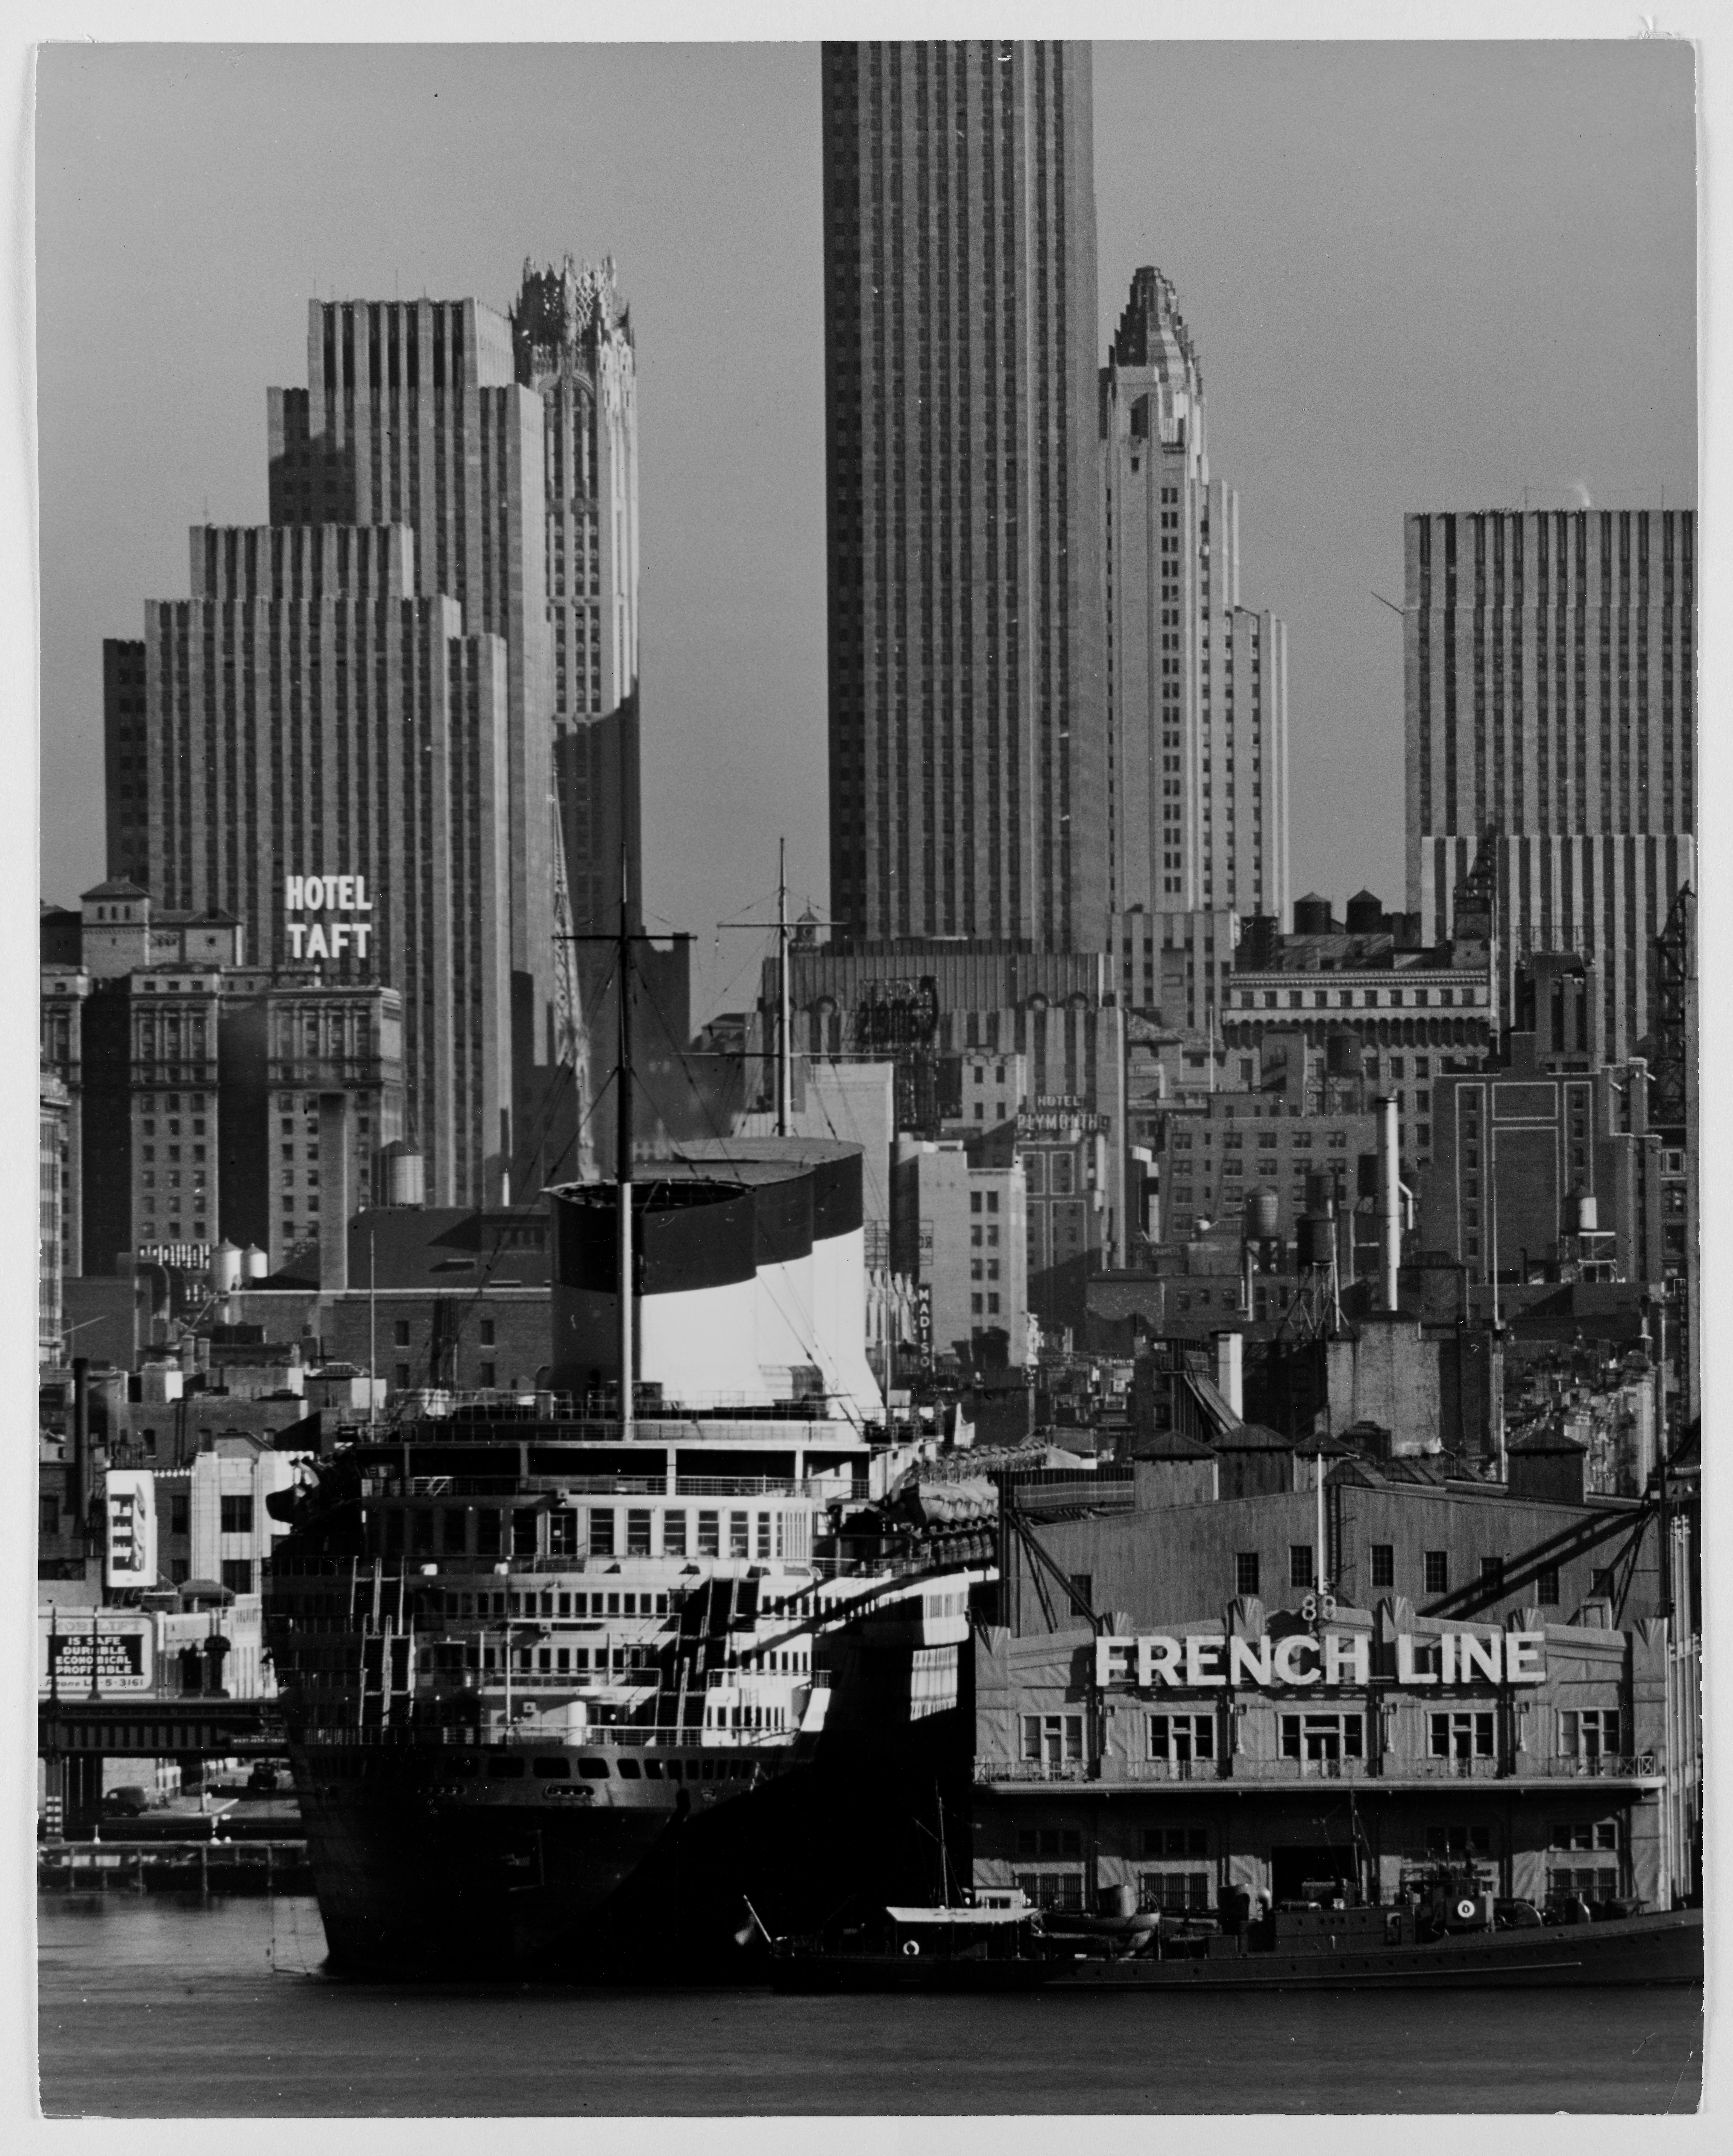 [S.S. Normandie docked at Pier 88 on the Hudson River, with the Waldorf Astoria, General Electric Building, and skyscrapers of Rockefeller Center in the background, New York City, 1940].